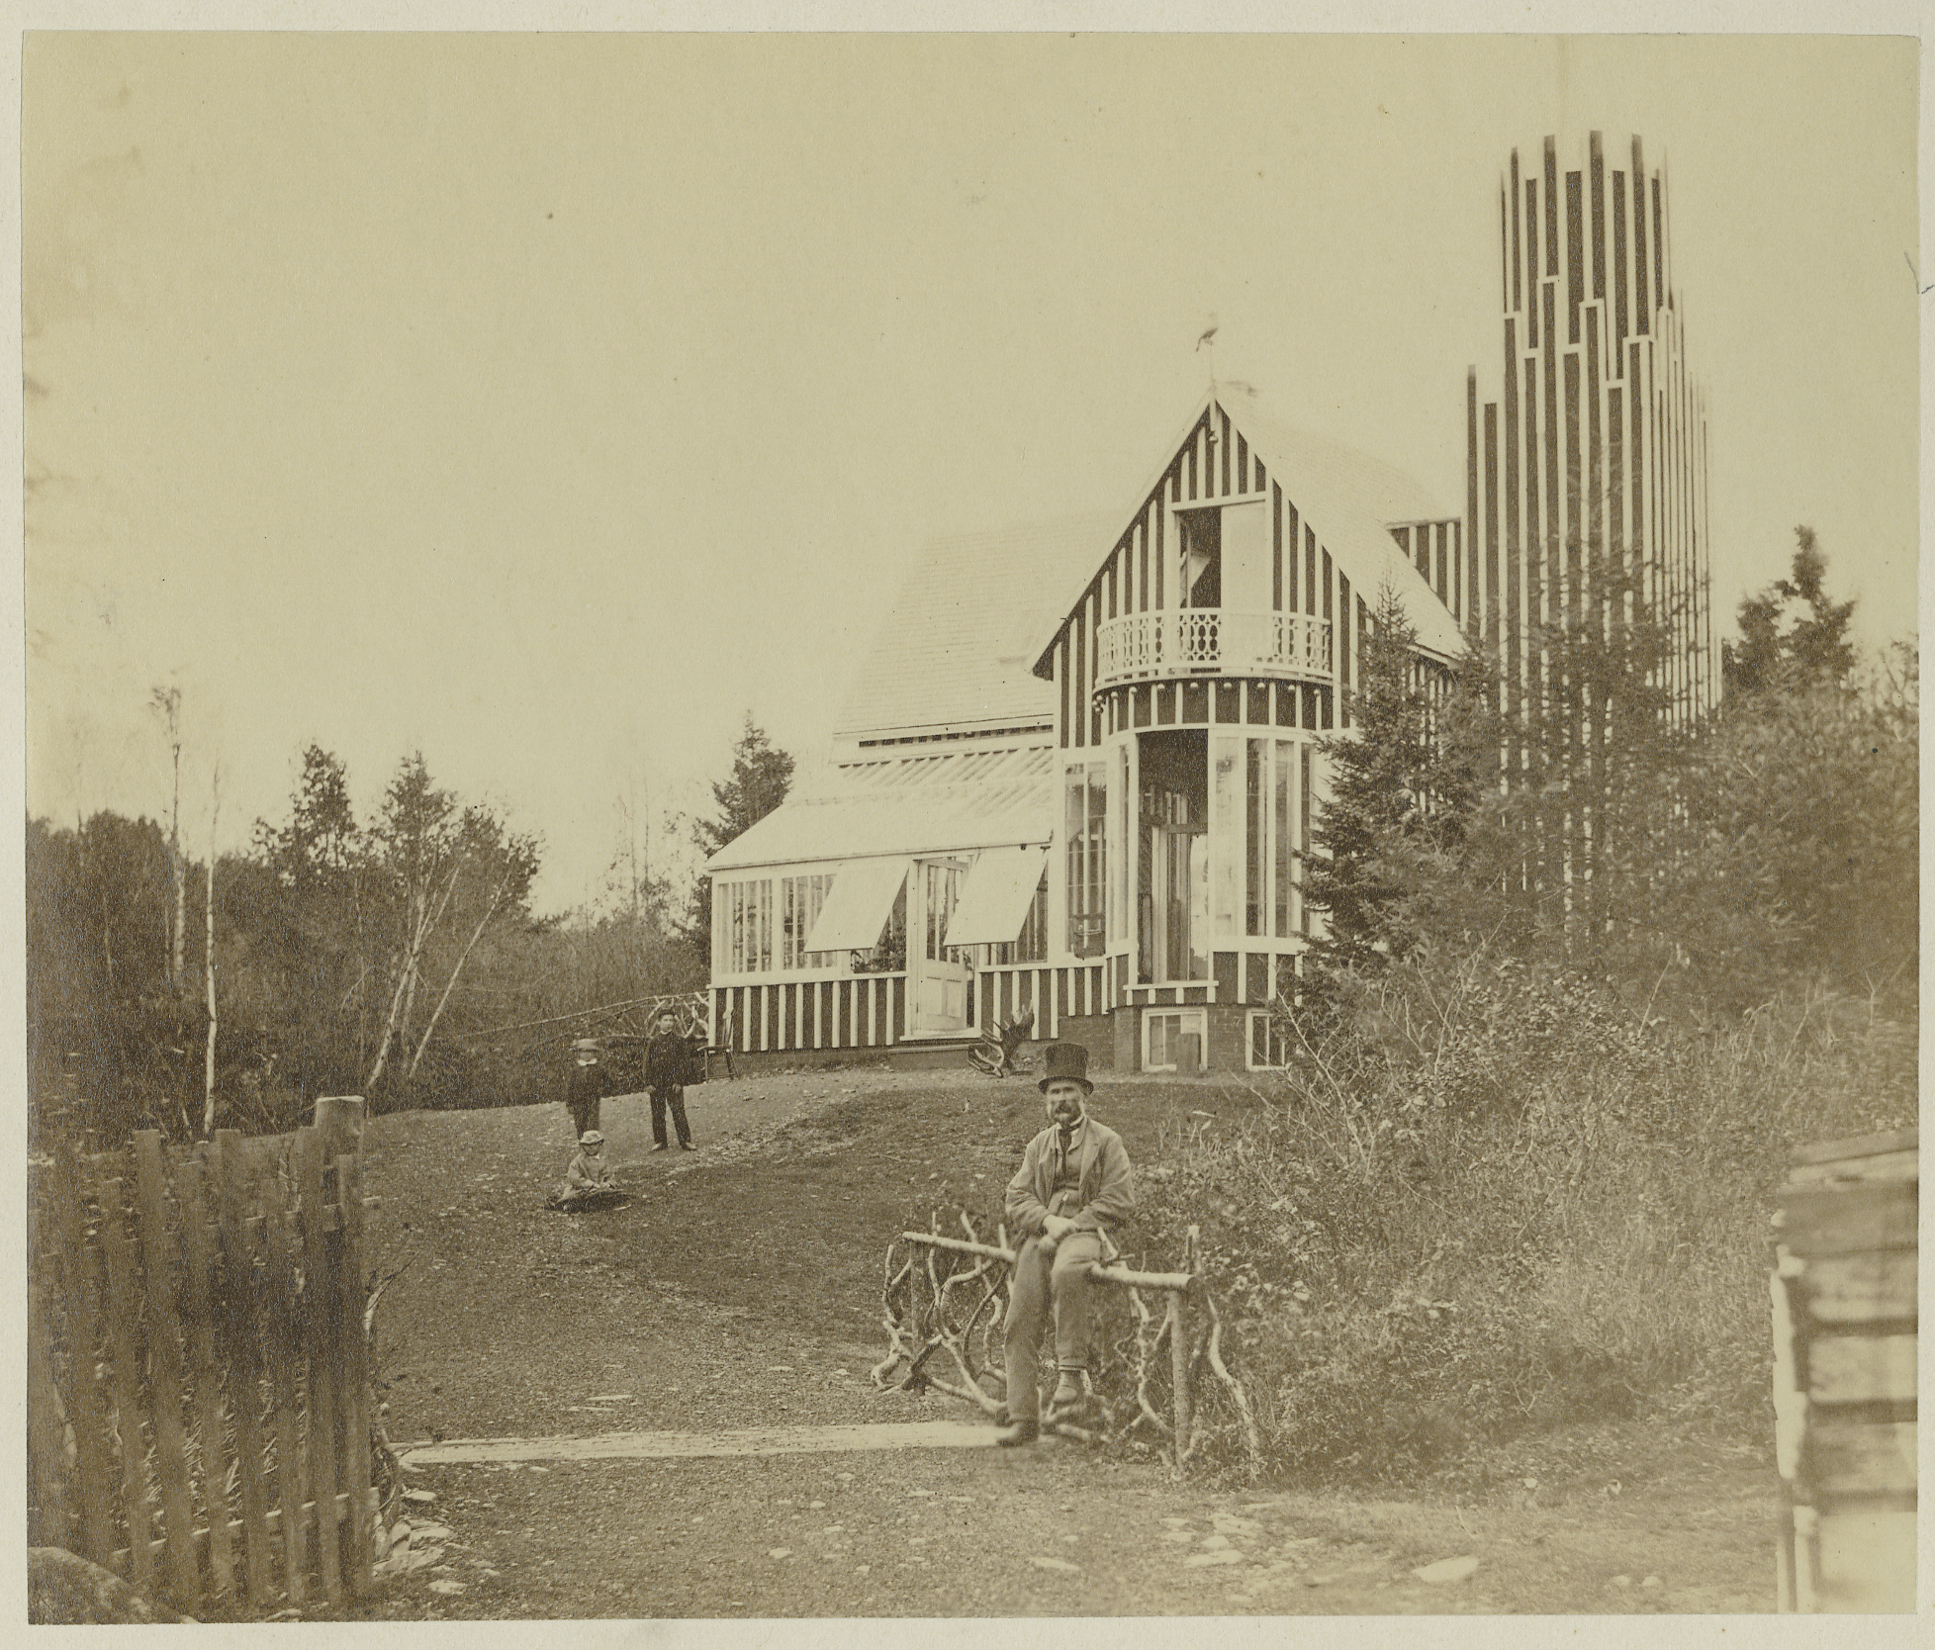 The Glass House  , The only photograph known to exist of Downs' Zoological Gardens. The proprietor himself perches in front of the Glass House (the zoo's aviary) in the 1860's.  (Presented with permission from the Nova Scotia Provincial Archives)